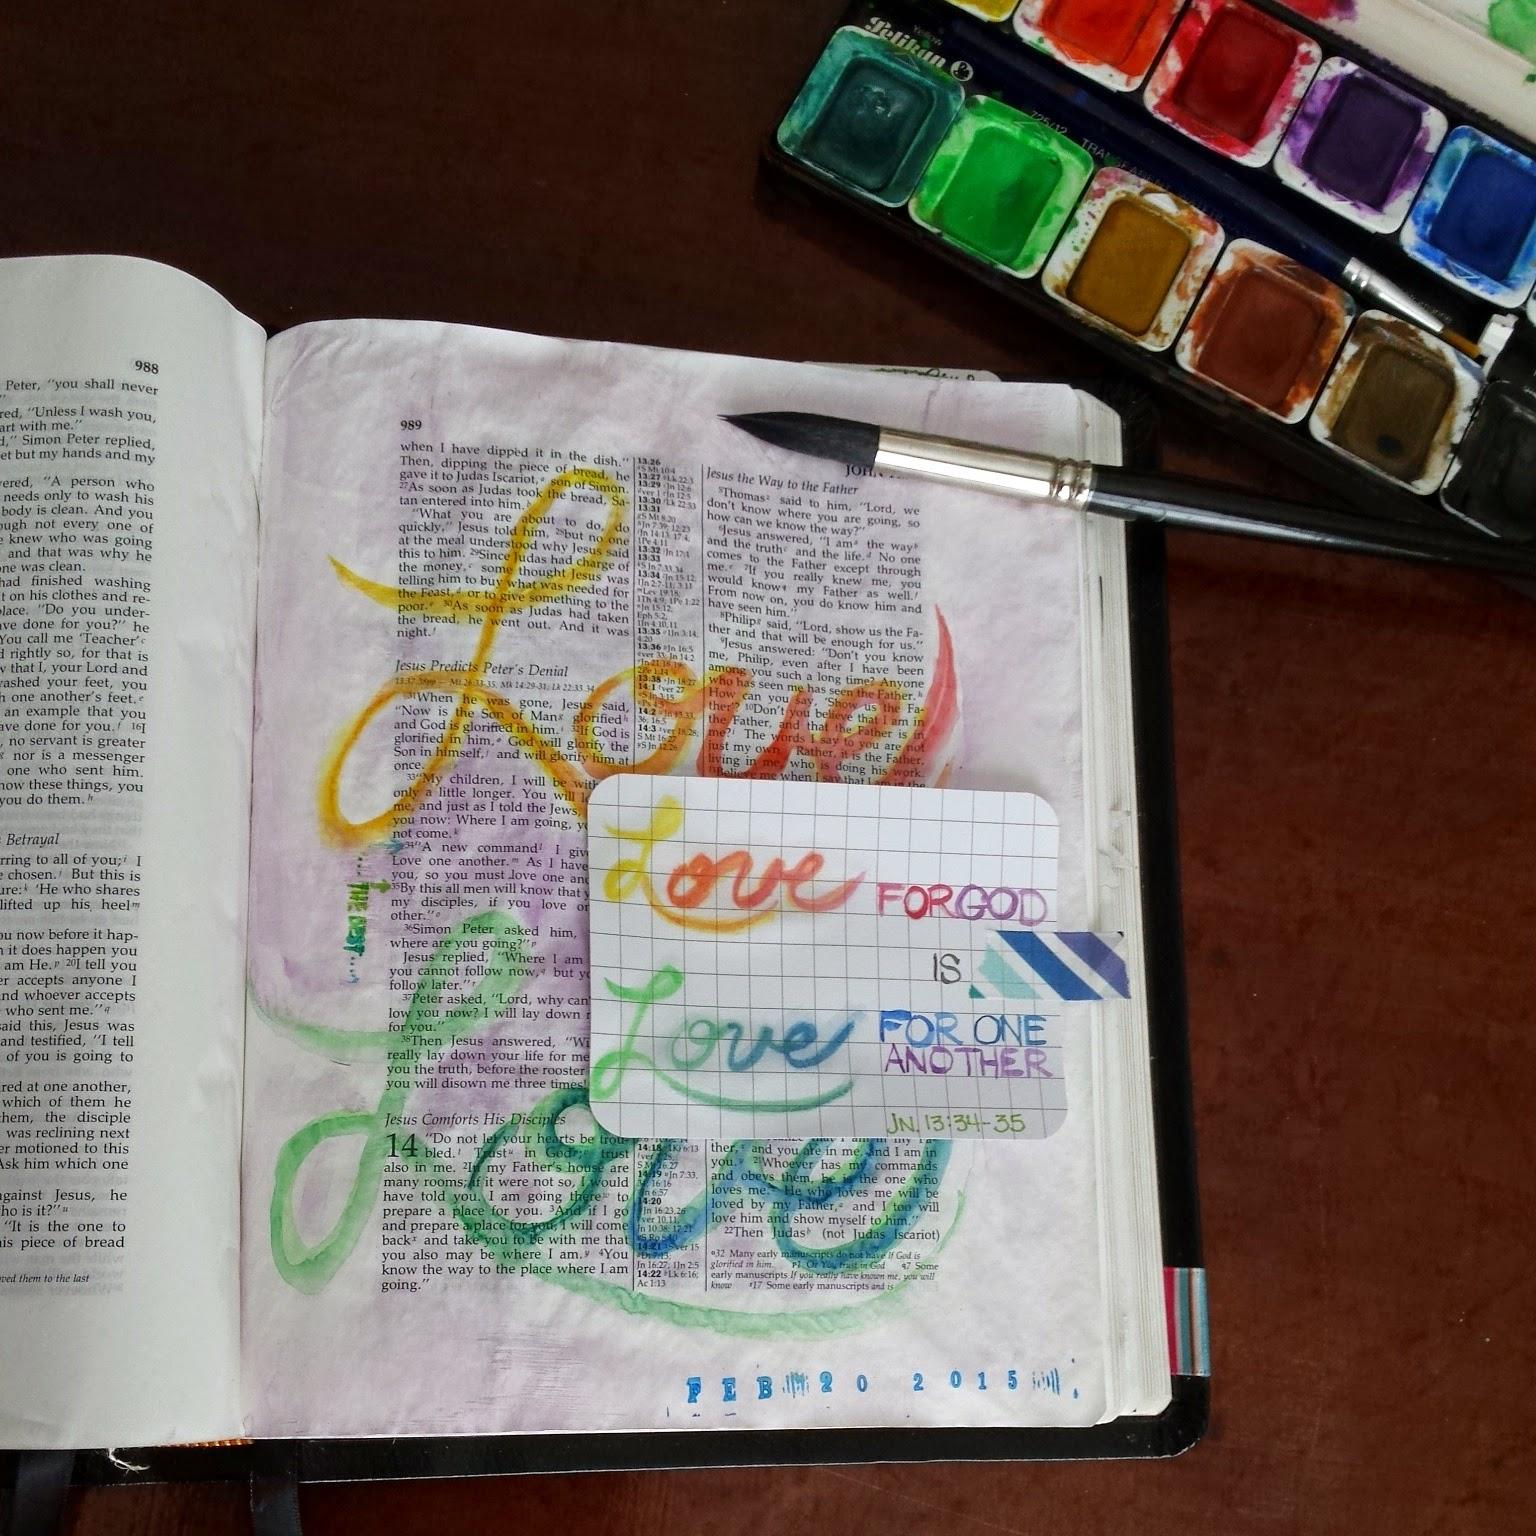 Journaling Bible page inspired by John 13:34-35;  love one another